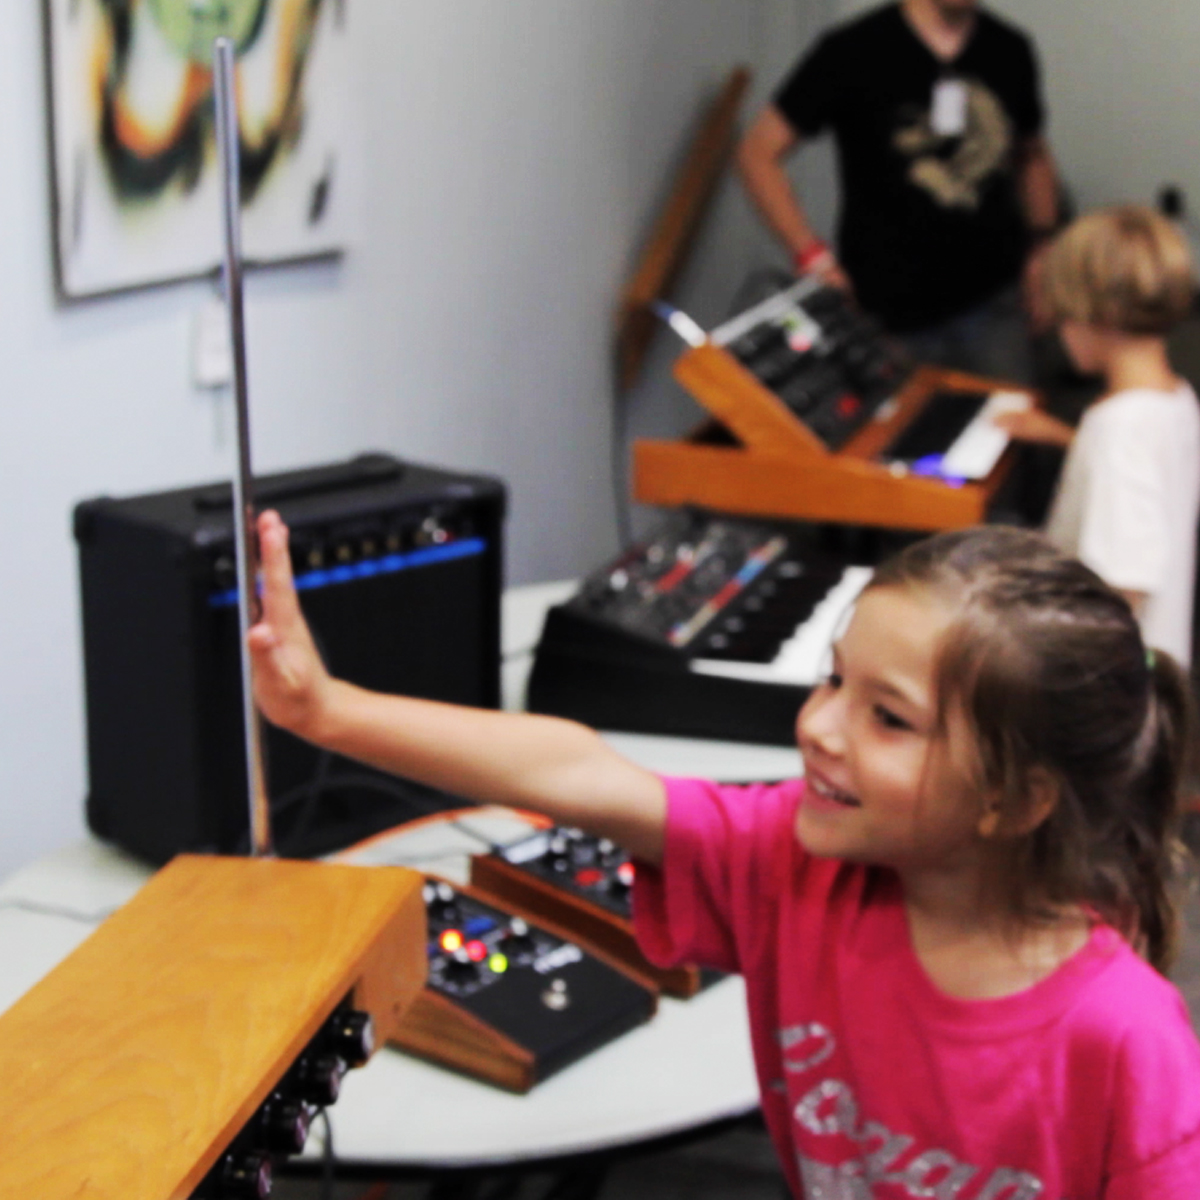 Branching Out: BMF Presents Science of Sound in Ann Arbor, Michigan